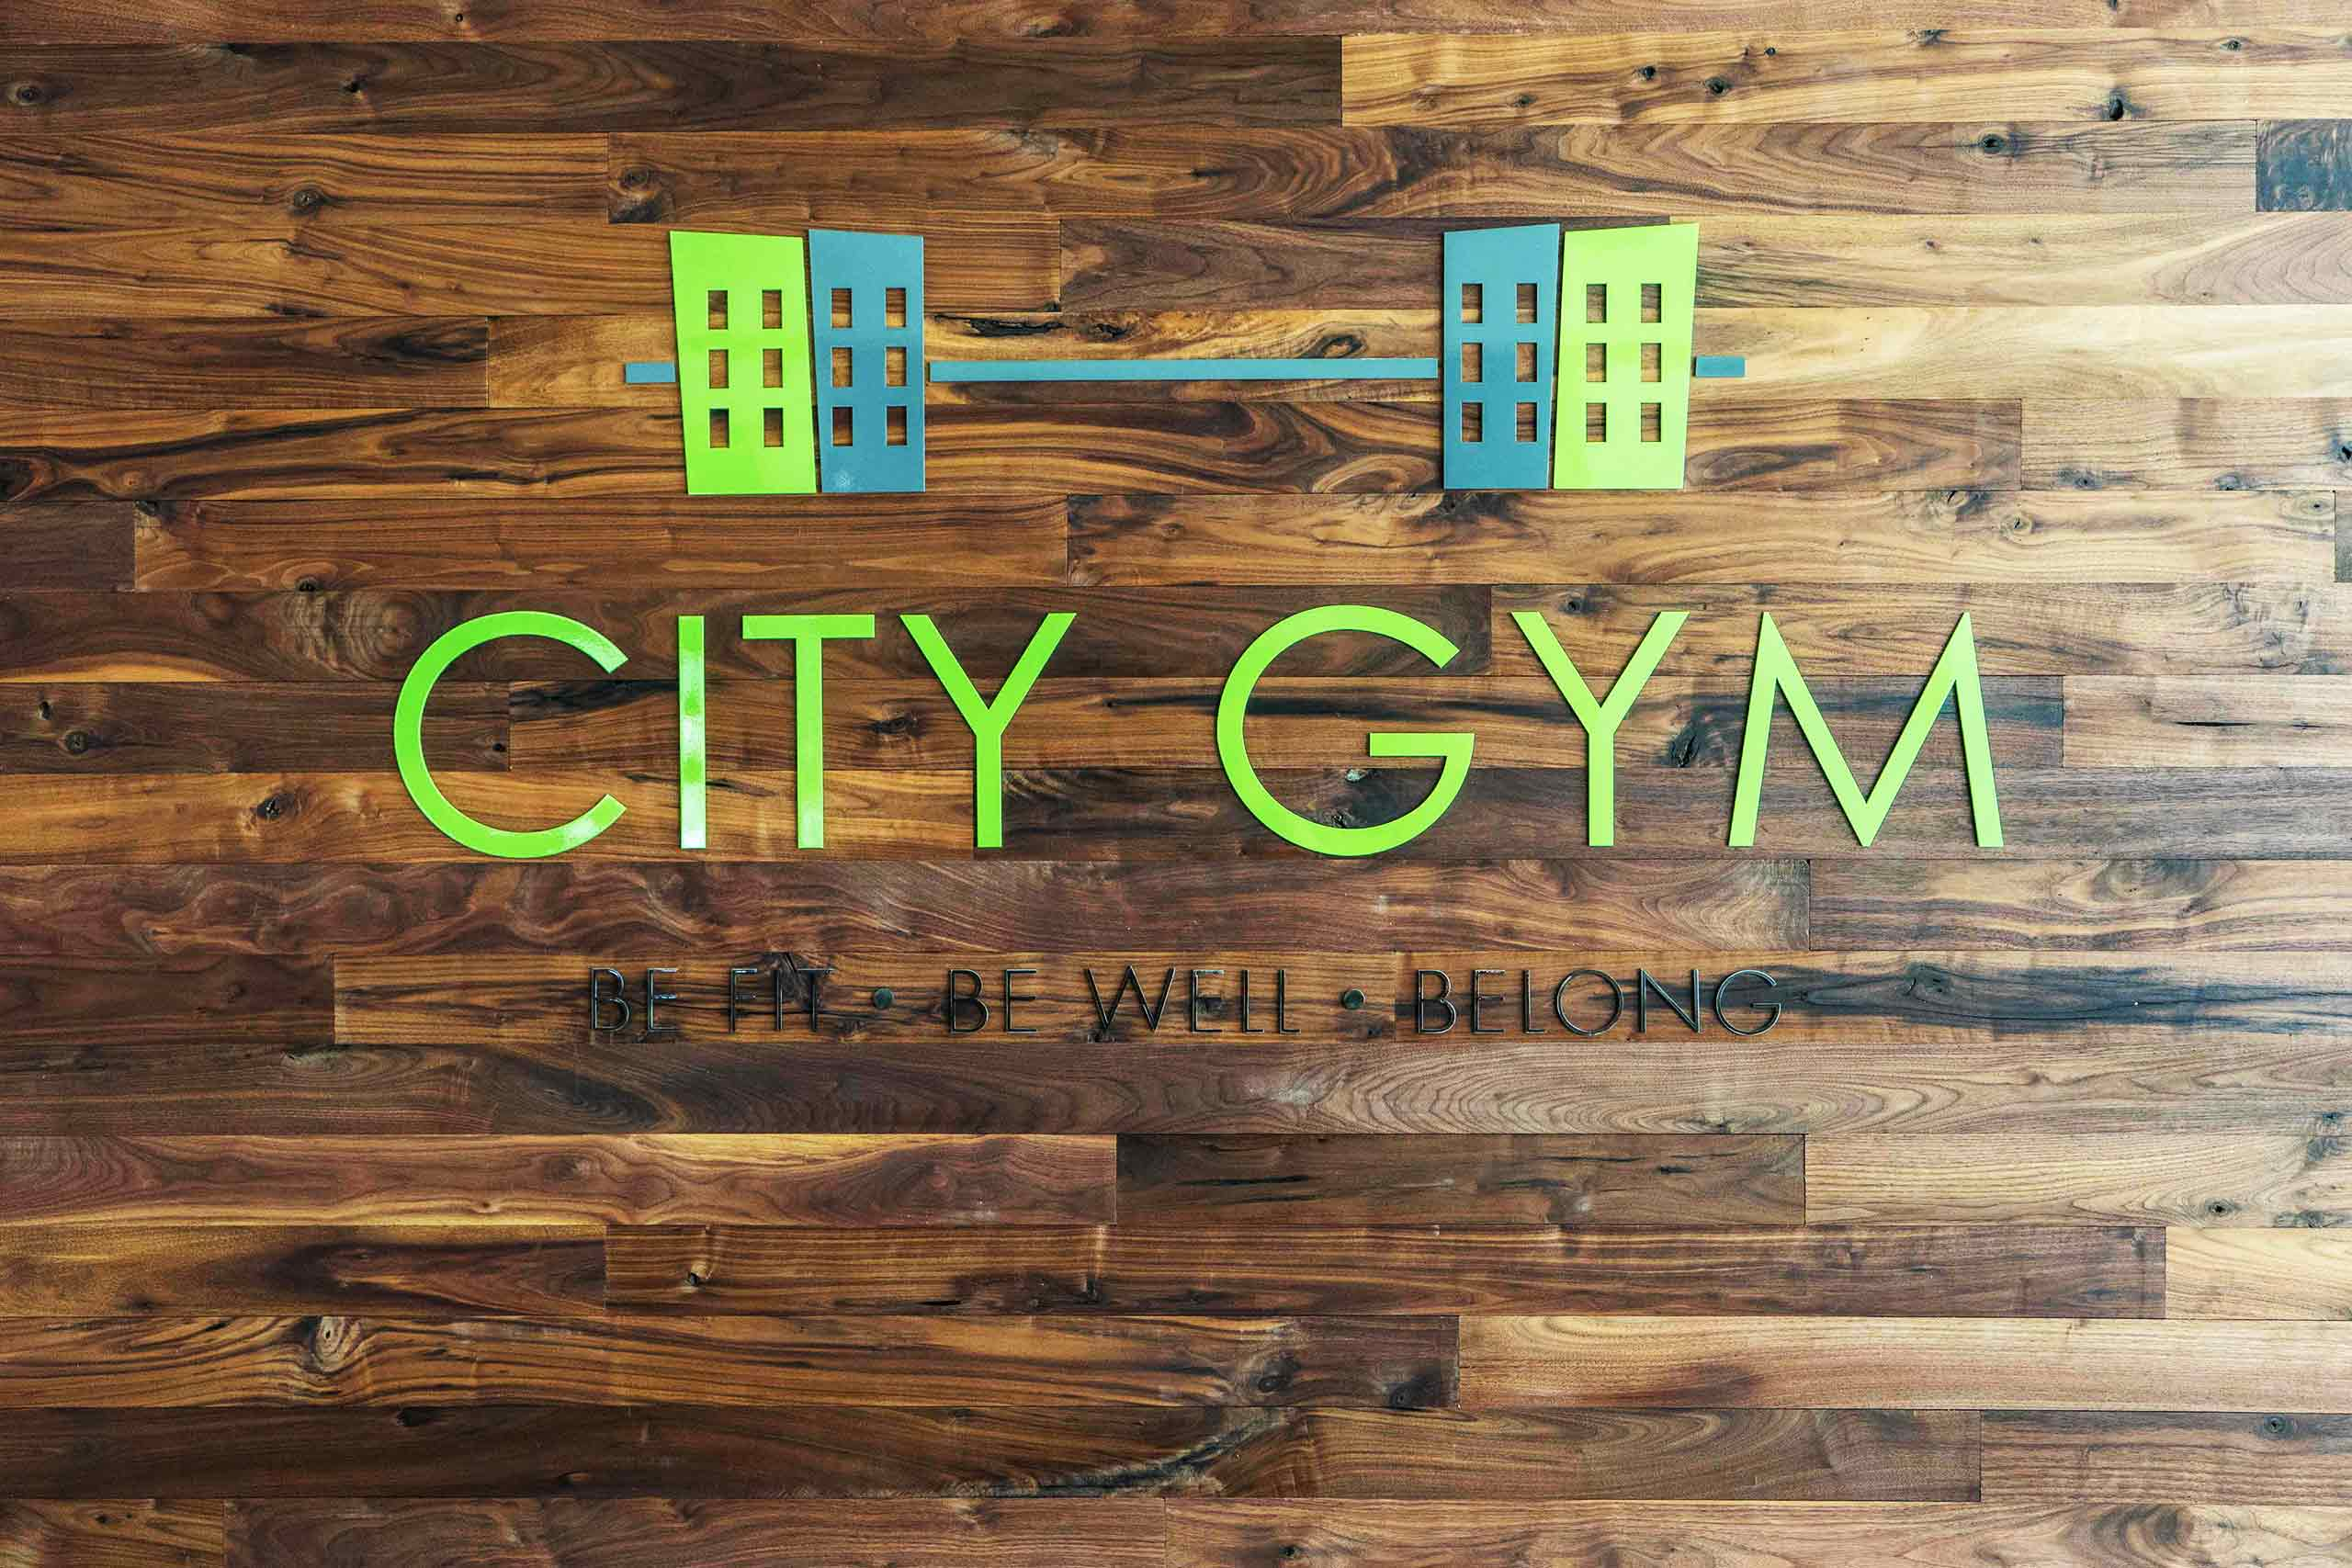 East-9-at-Pickwick-Plaza-City-Gym-Sign